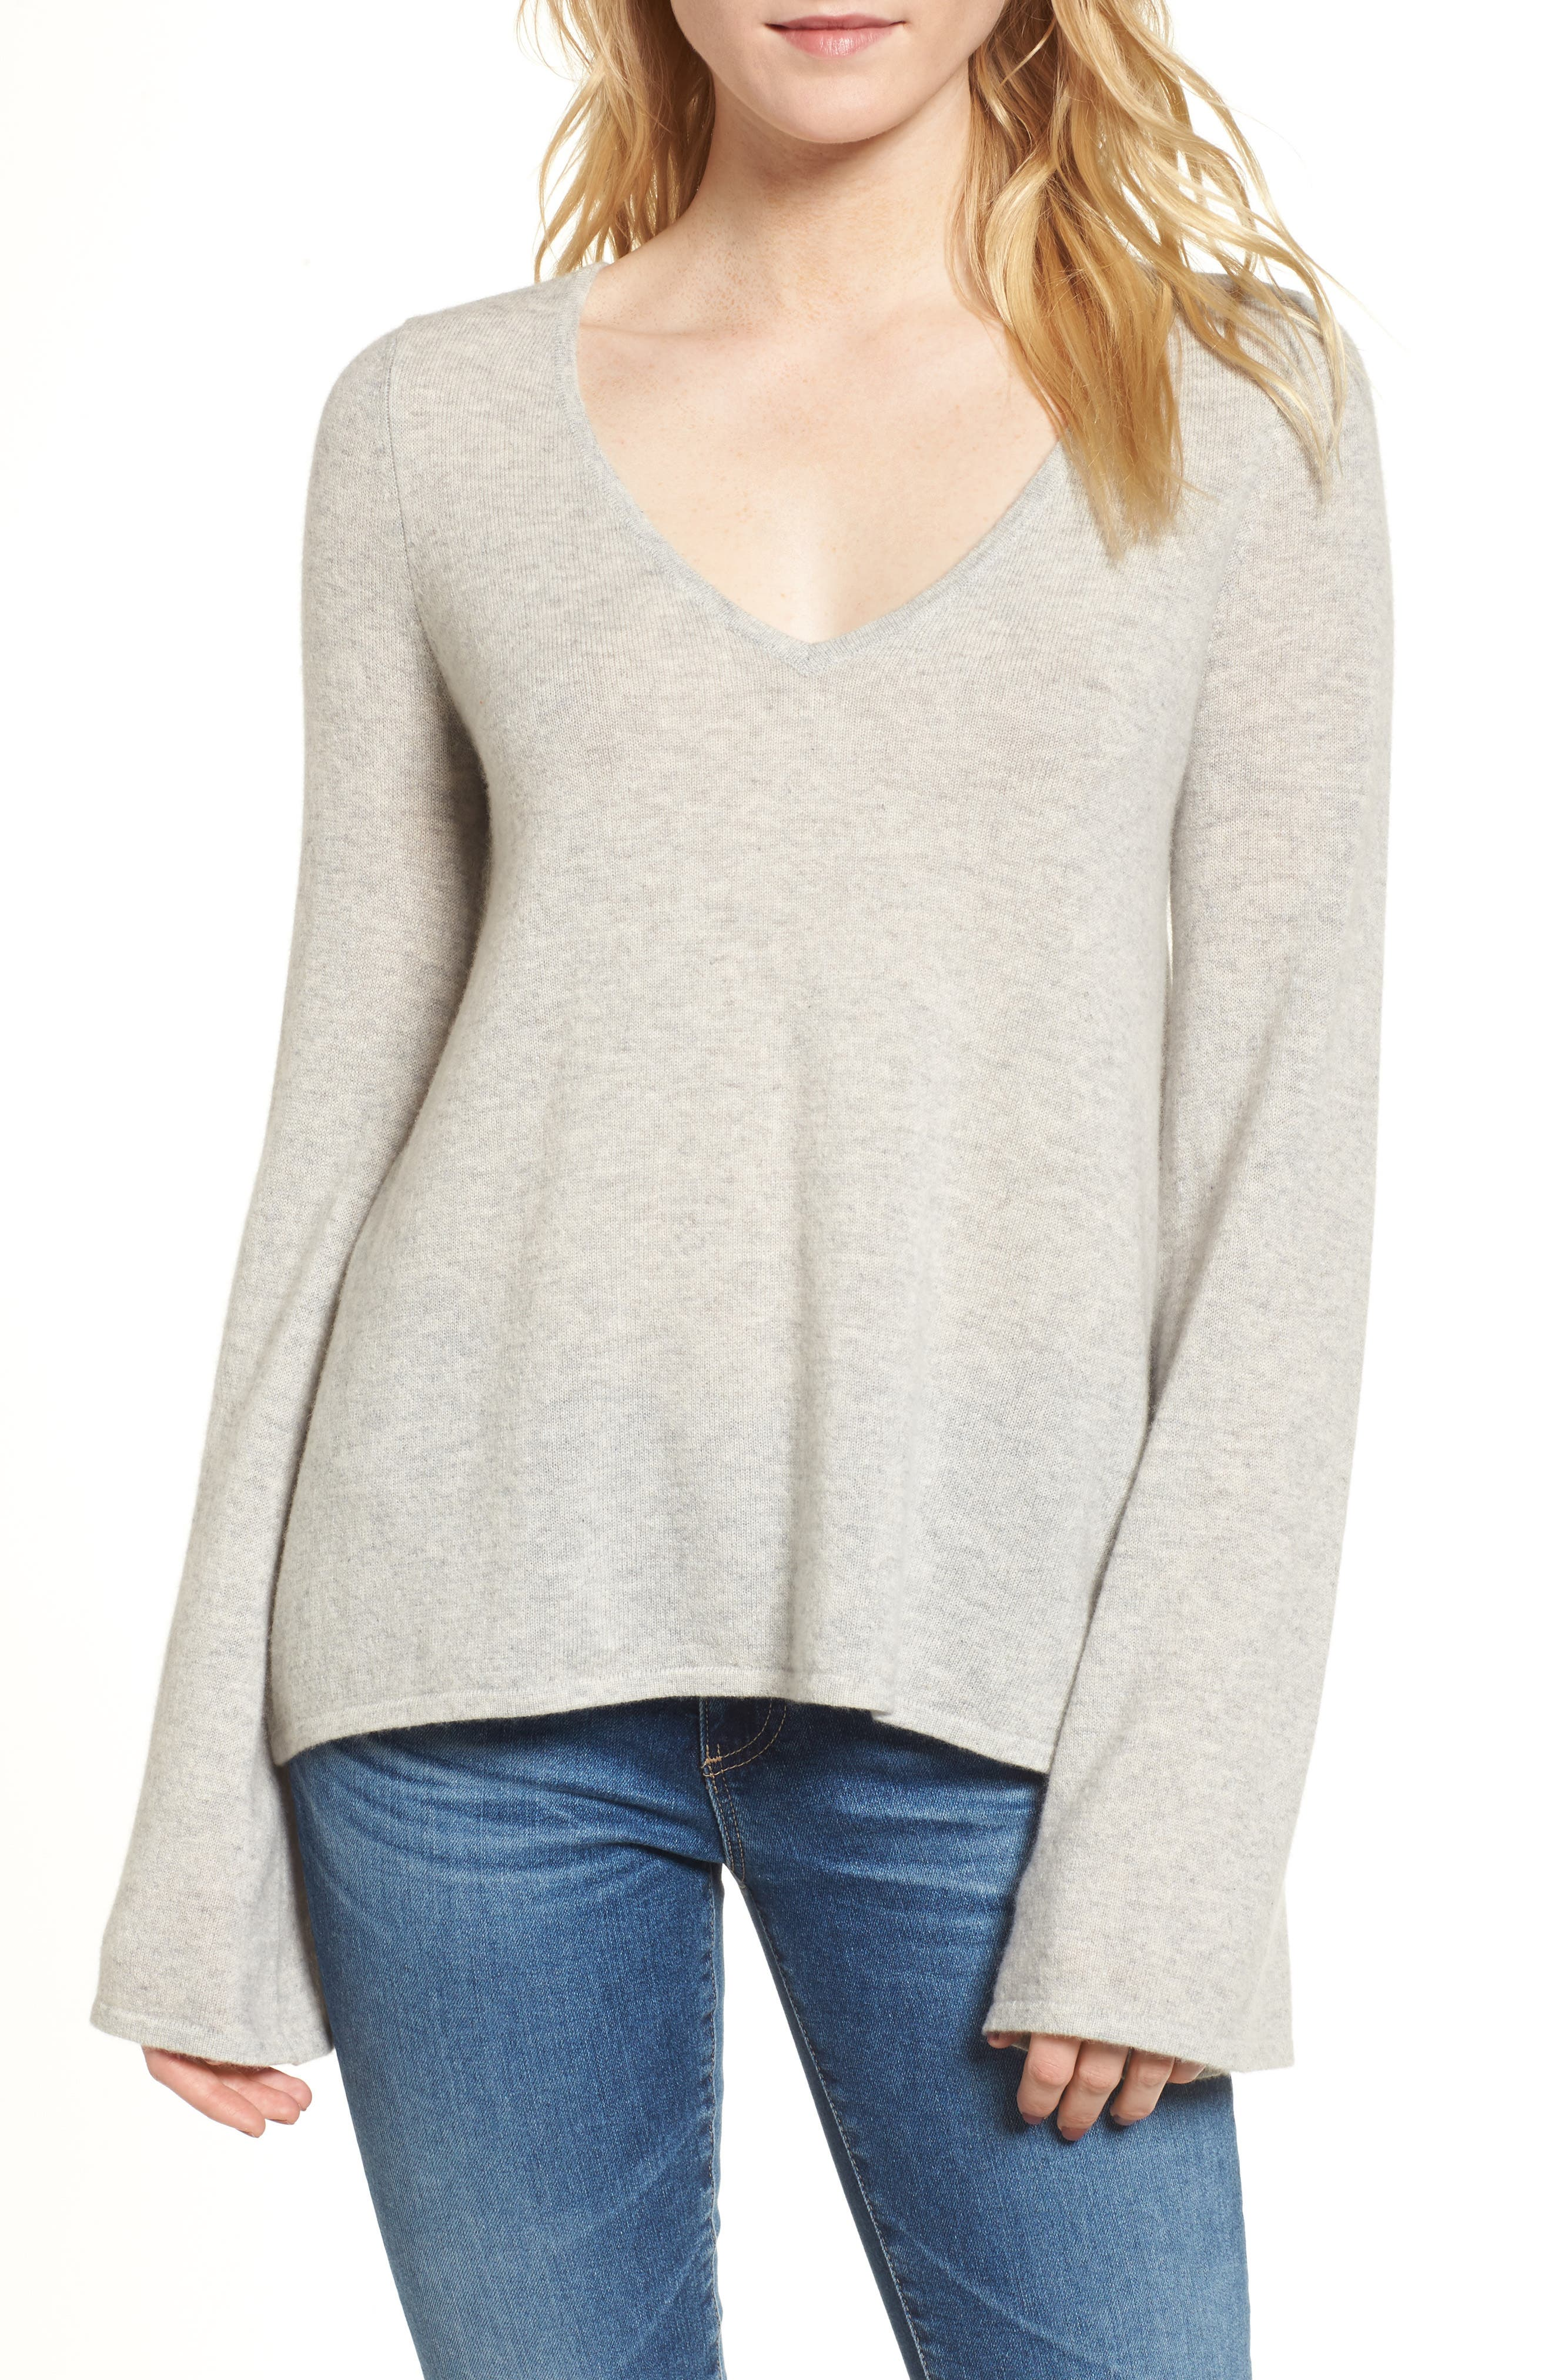 Marylee Cashmere Top,                         Main,                         color, Light Heather Grey